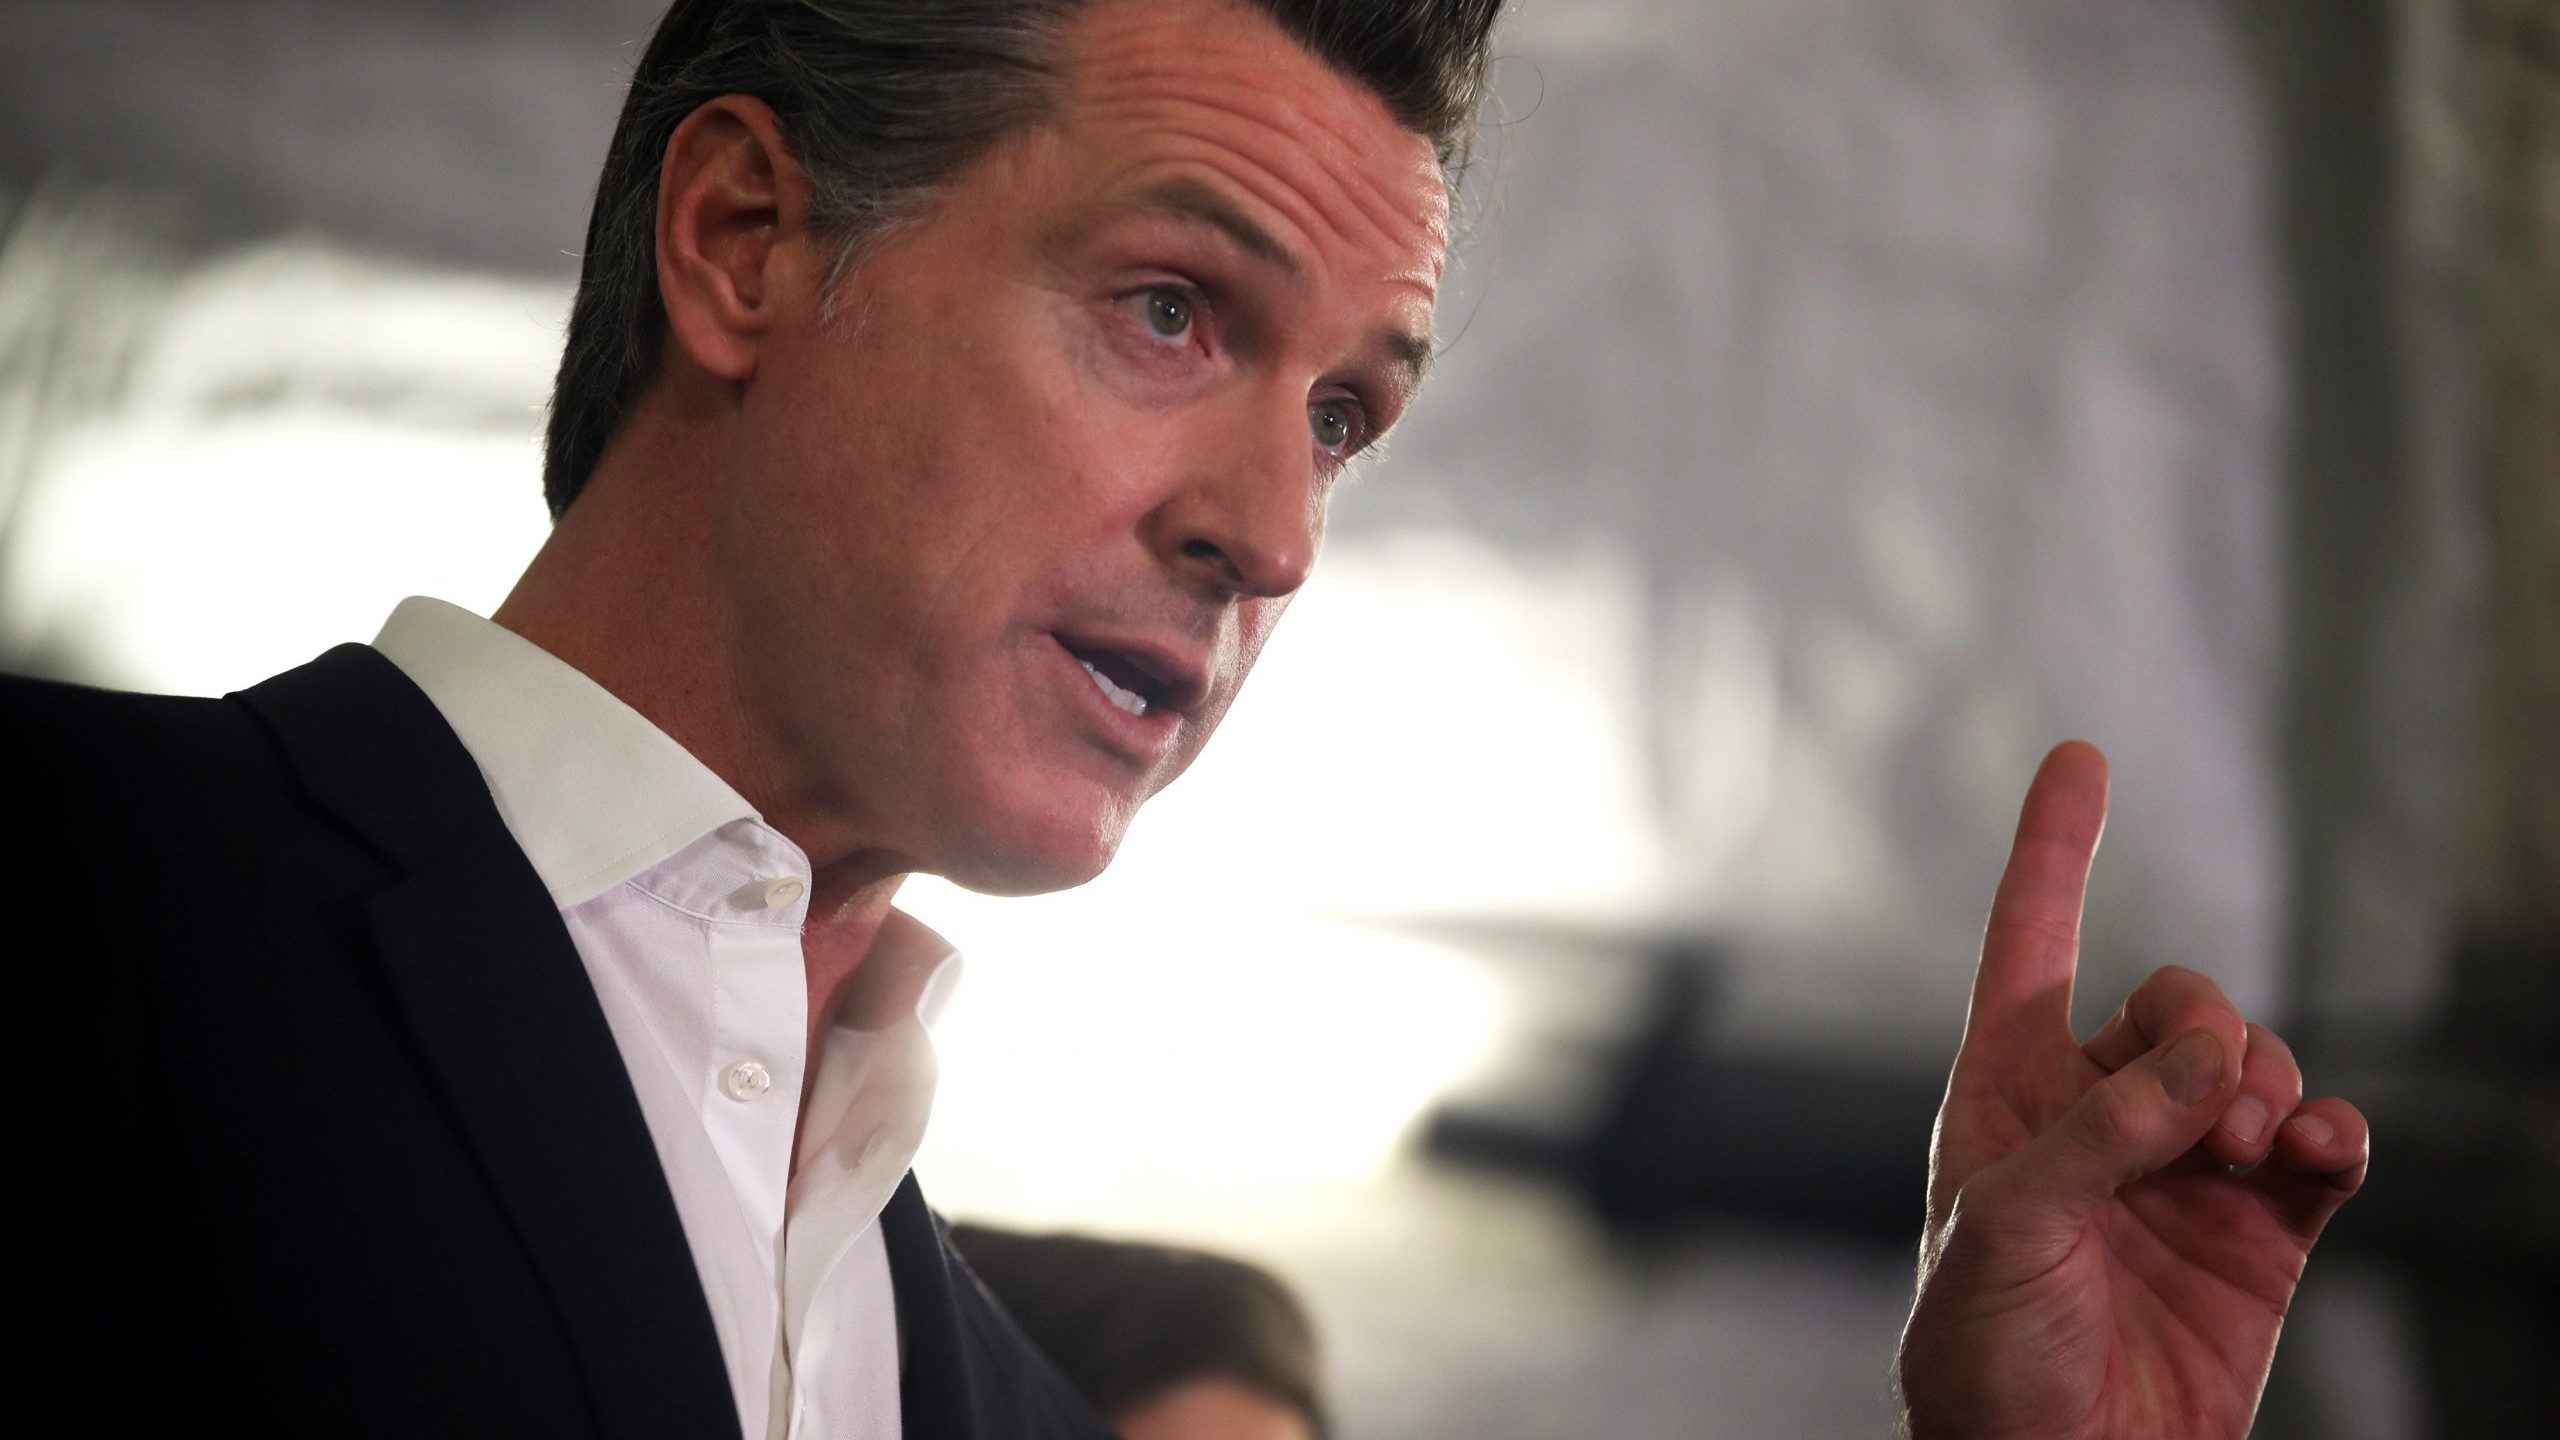 California Gov. Gavin Newsom speaks during a a news conference in Oakland about the state's efforts to address homelessness on Jan. 16, 2020. (Credit: Justin Sullivan / Getty Images)